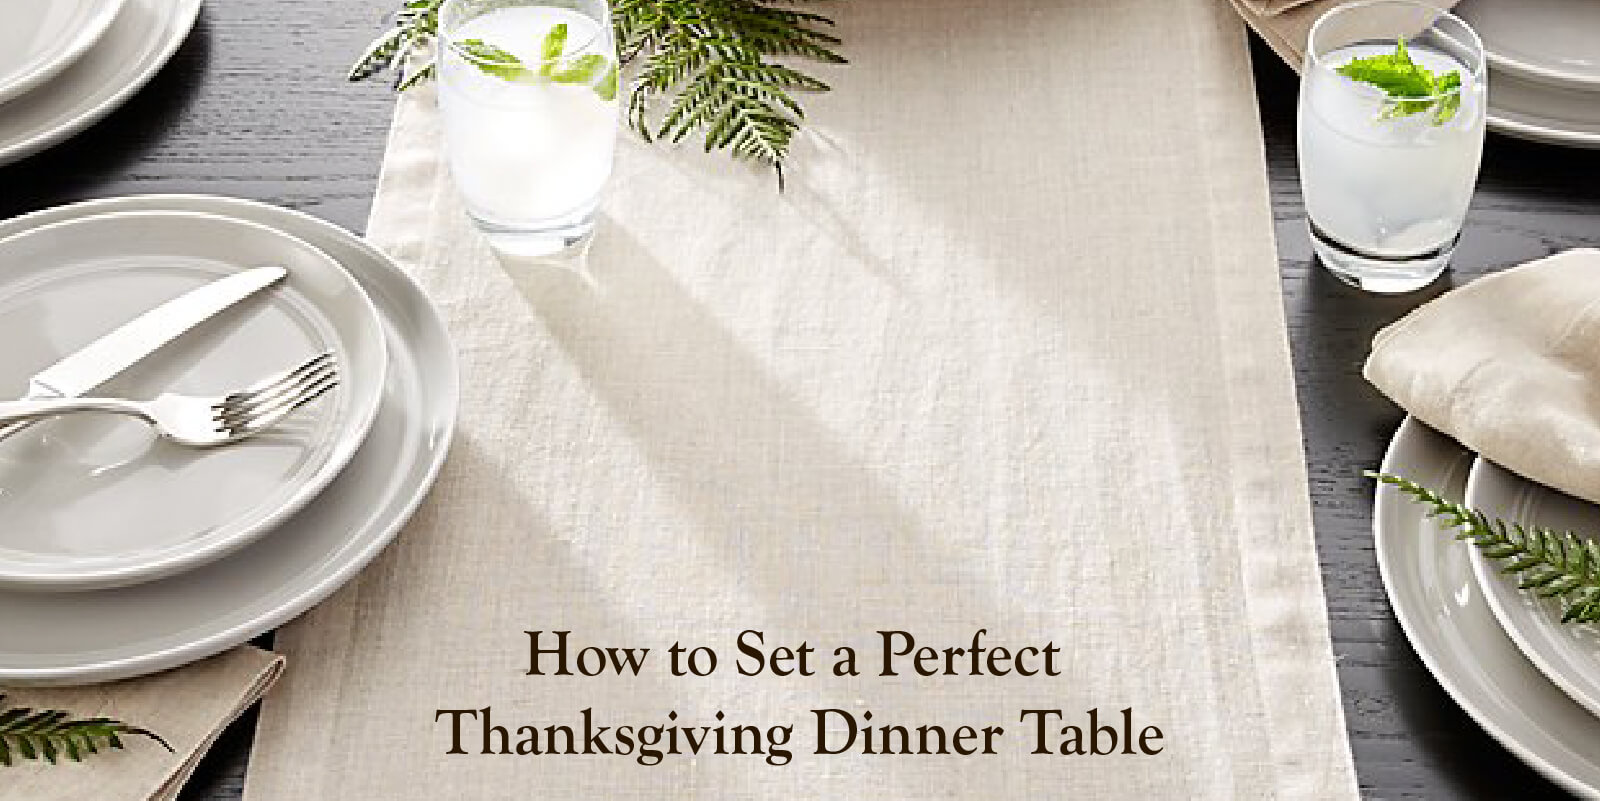 3 Simple Thanksgiving Table Decor Ideas